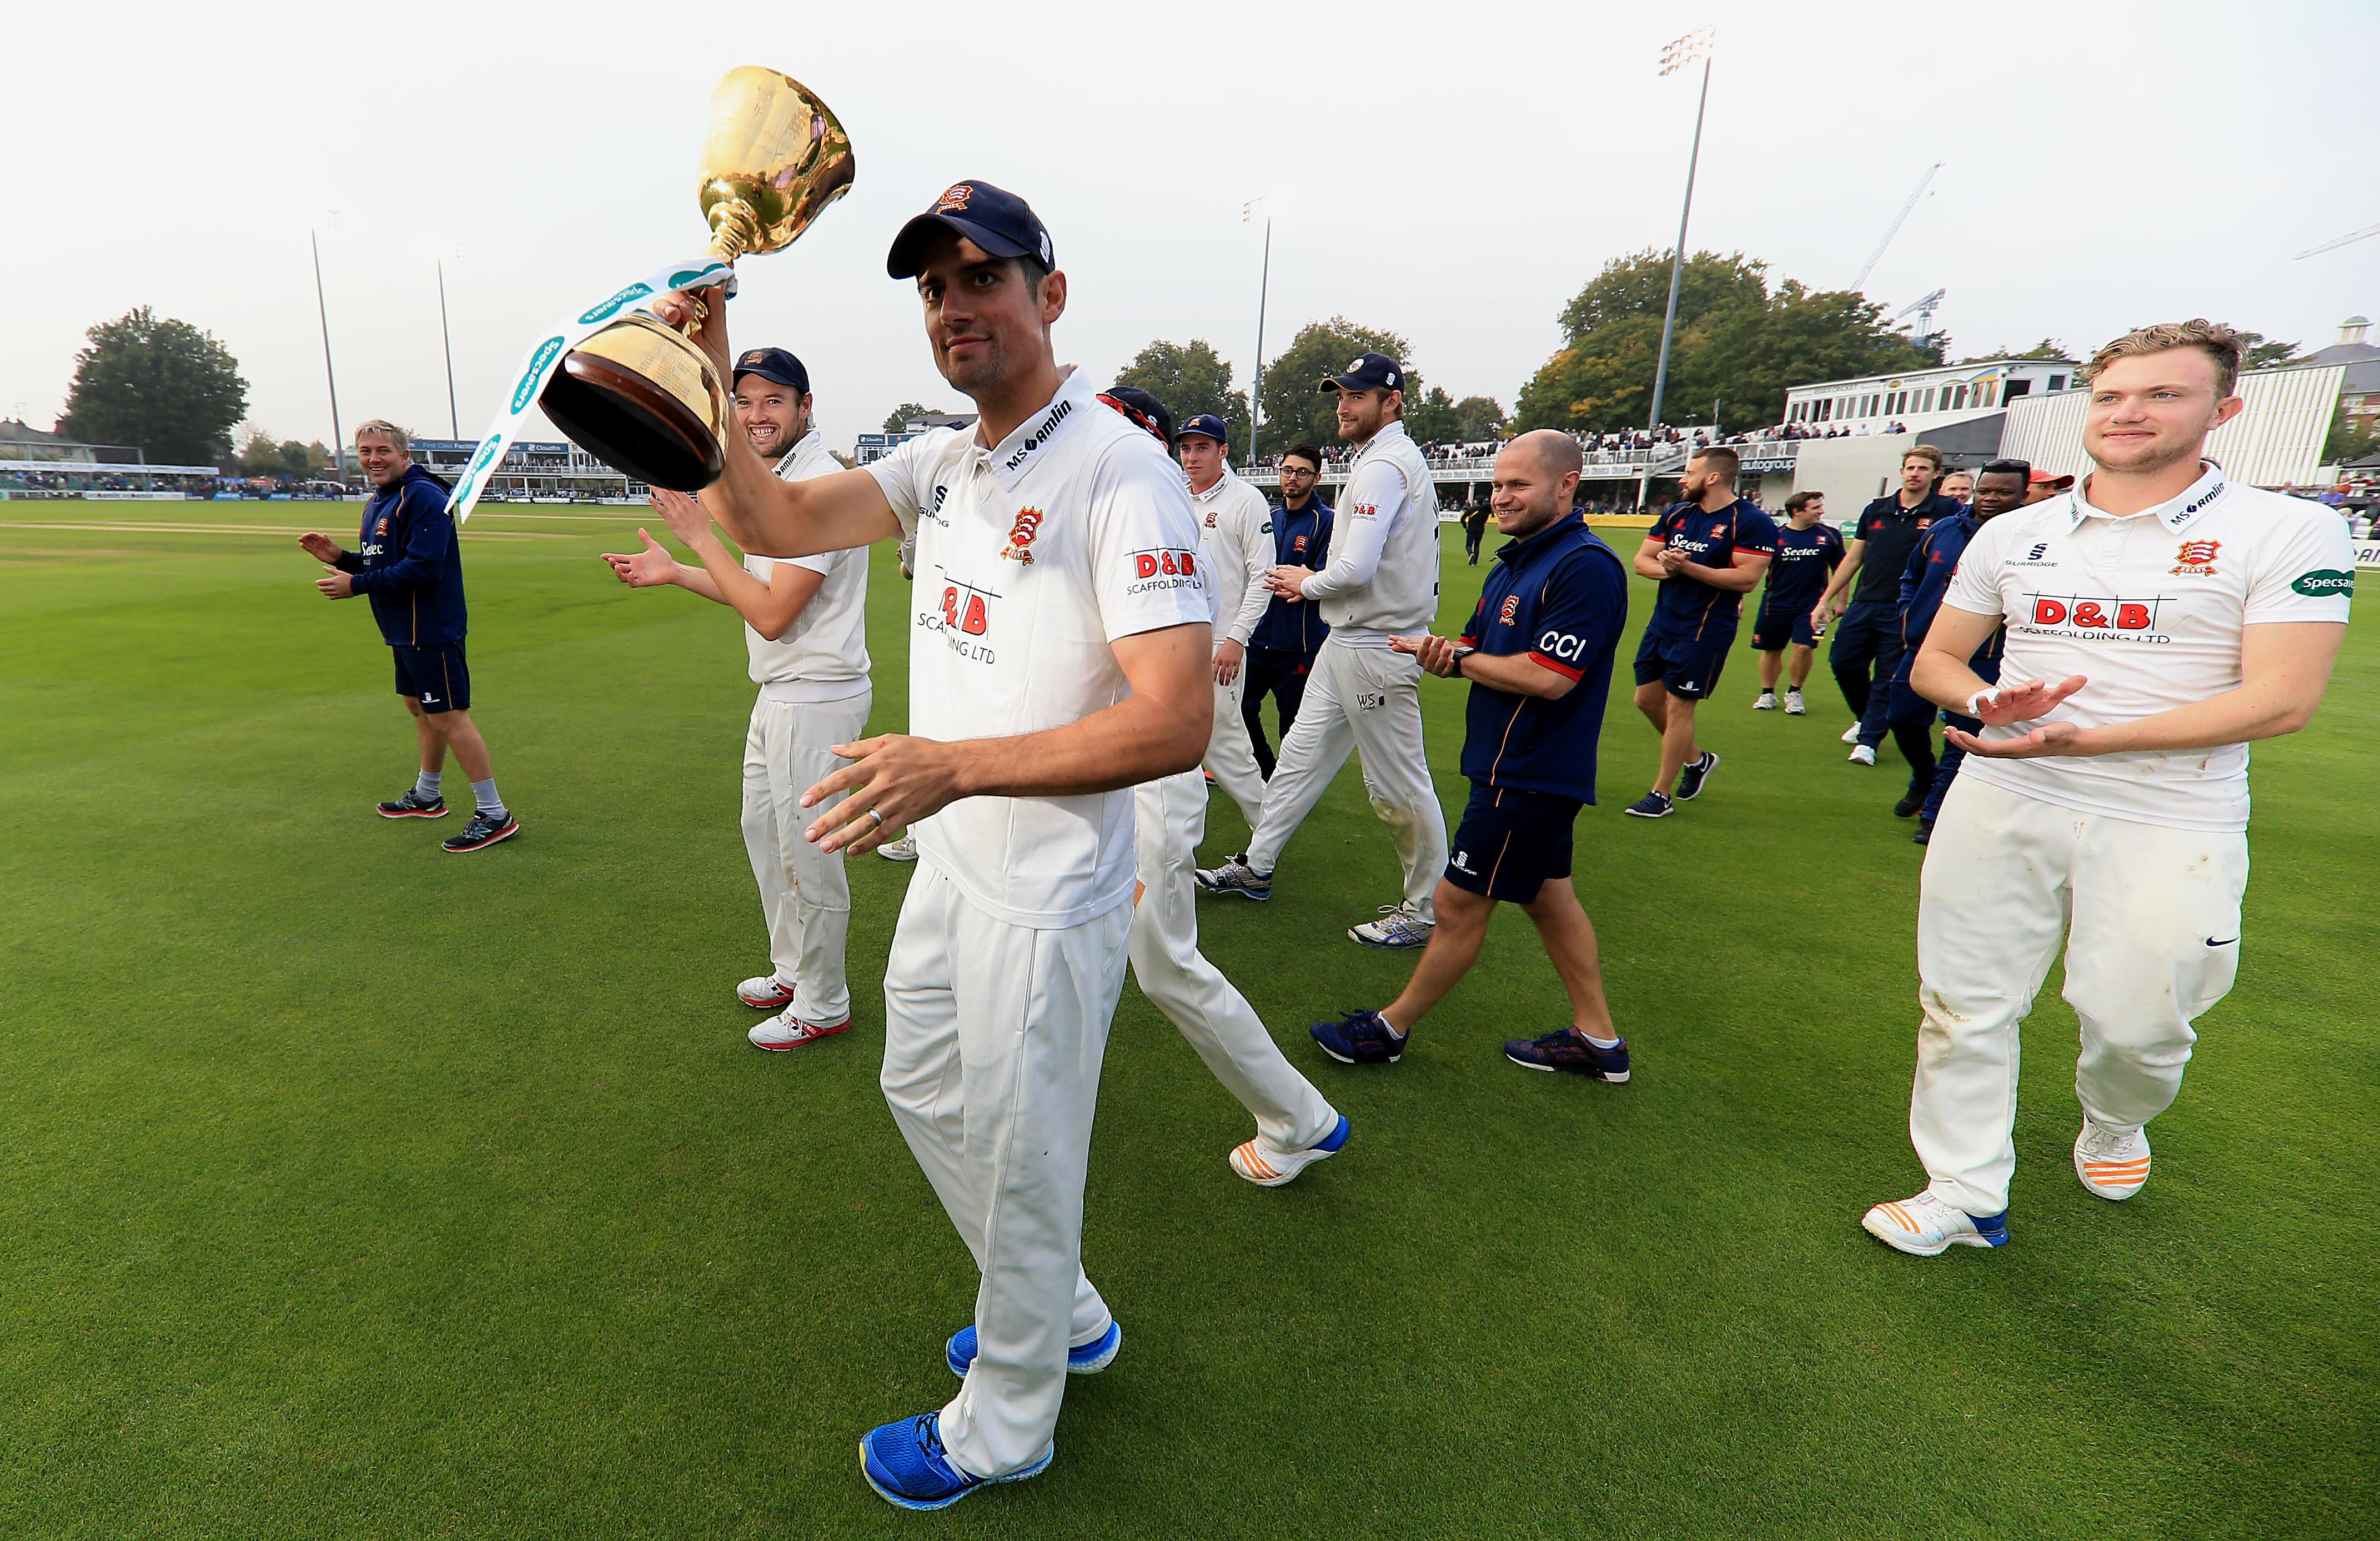 Alastair Cook lifted the County Championship with Essex in 2017